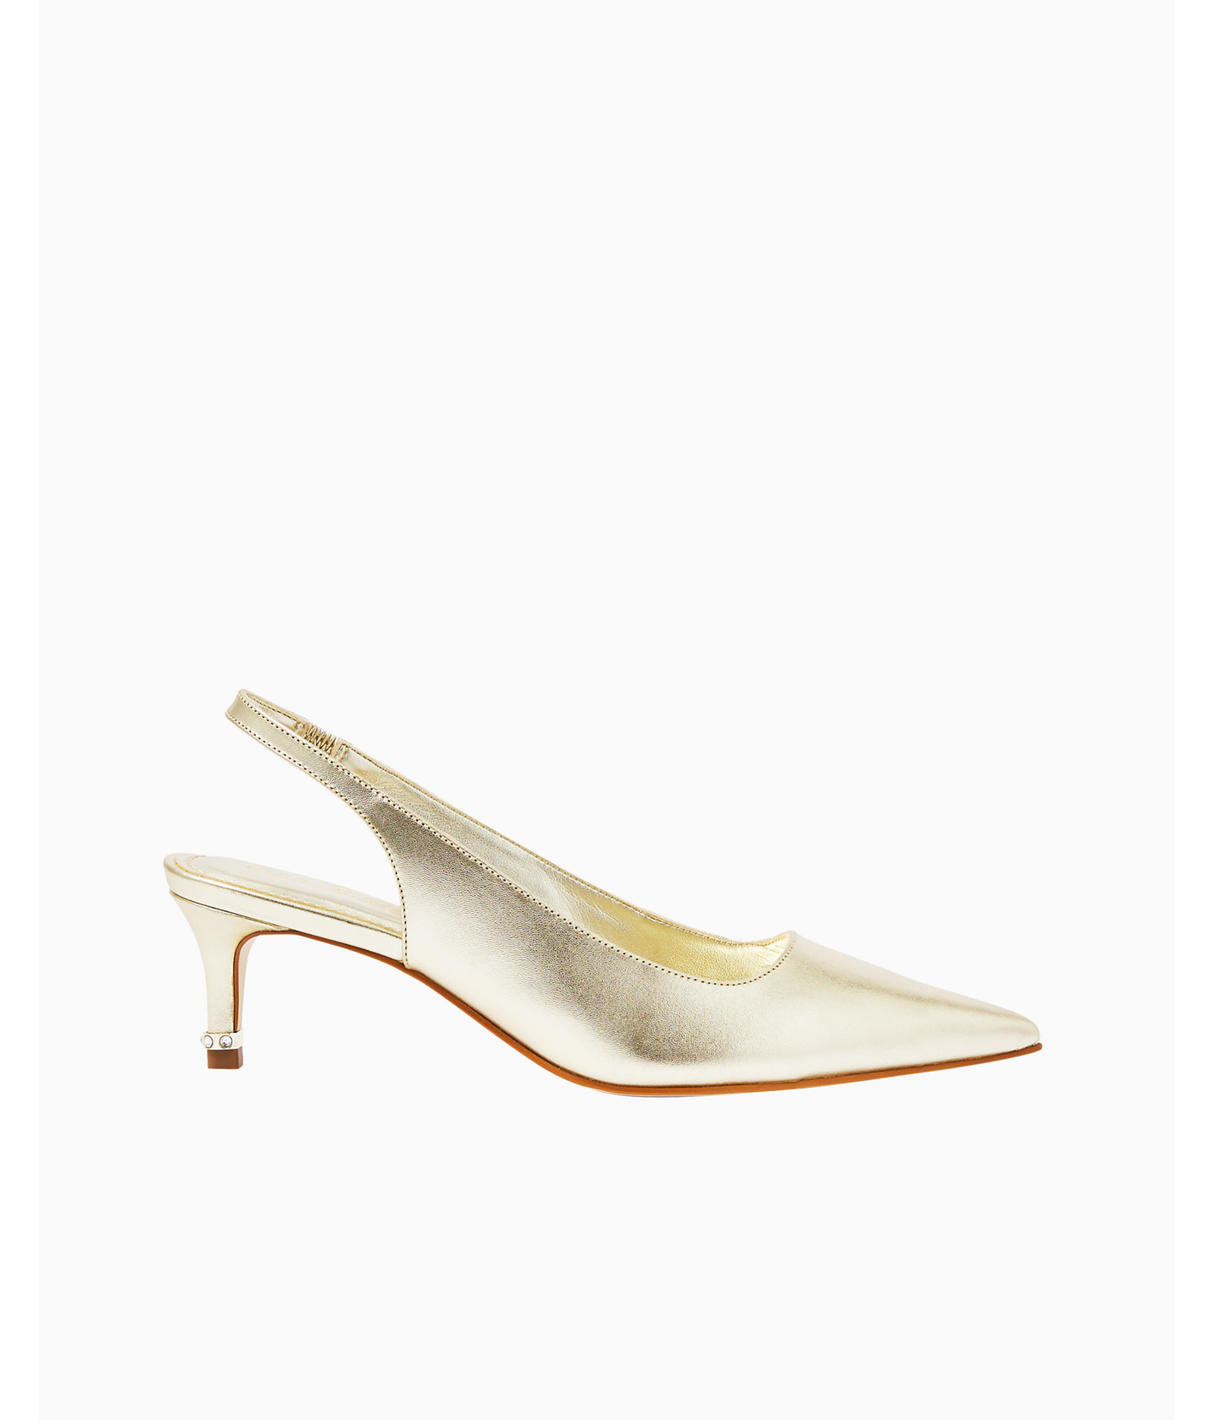 Lilly Pulitzer Erin Slingback Pump In Gold Metallic